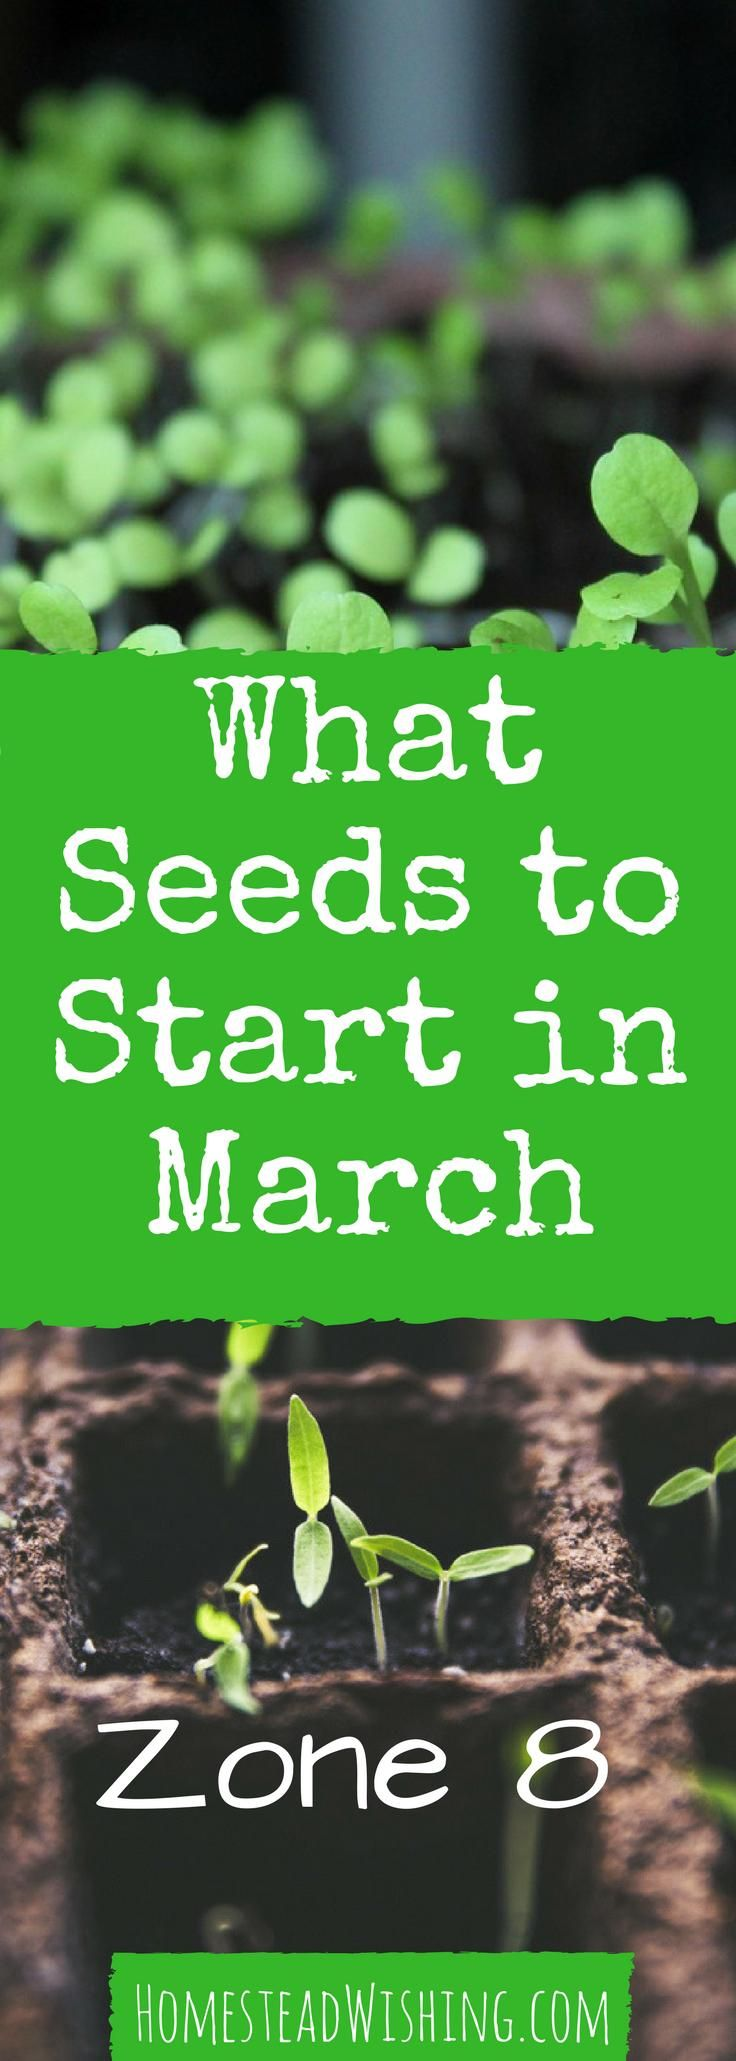 What seeds to start in March? - ZONE 8 This edition is for starting seeds indoors. Not sure what to plant? March-planting, gardening-in-March, seed-starting, online-gardening-school | http://homesteadwishing.com/what-seeds-to-start-in-march-indoors-zone-8/ | Homestead Wishing, Author Kristi Wheeler |